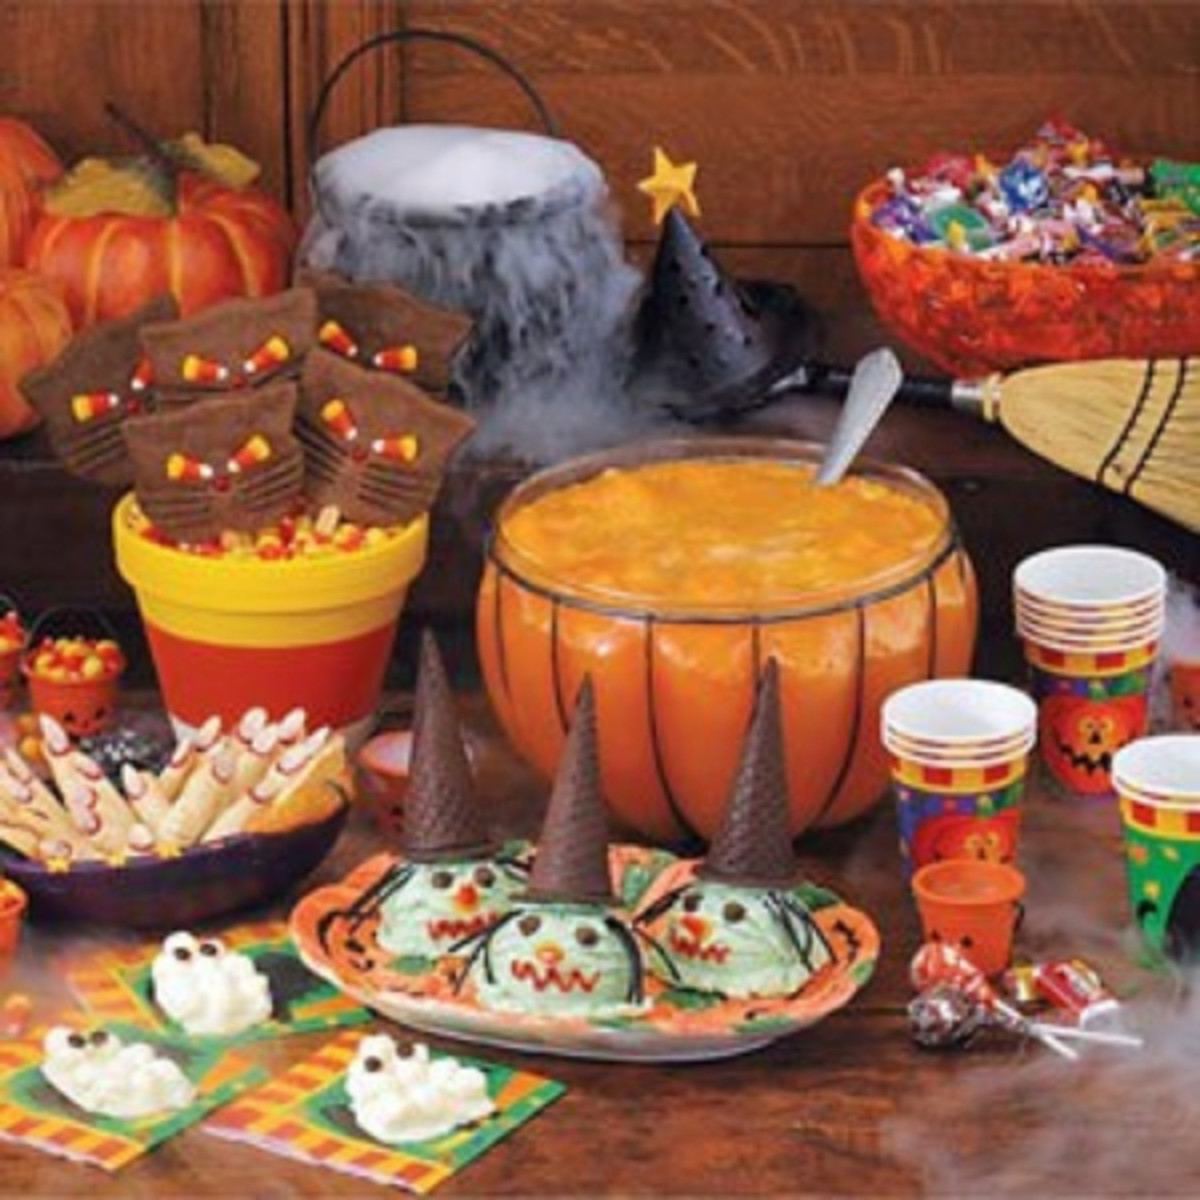 Making fun, tasty, and spooky Halloween treats together is a great way to spend time with your kids.